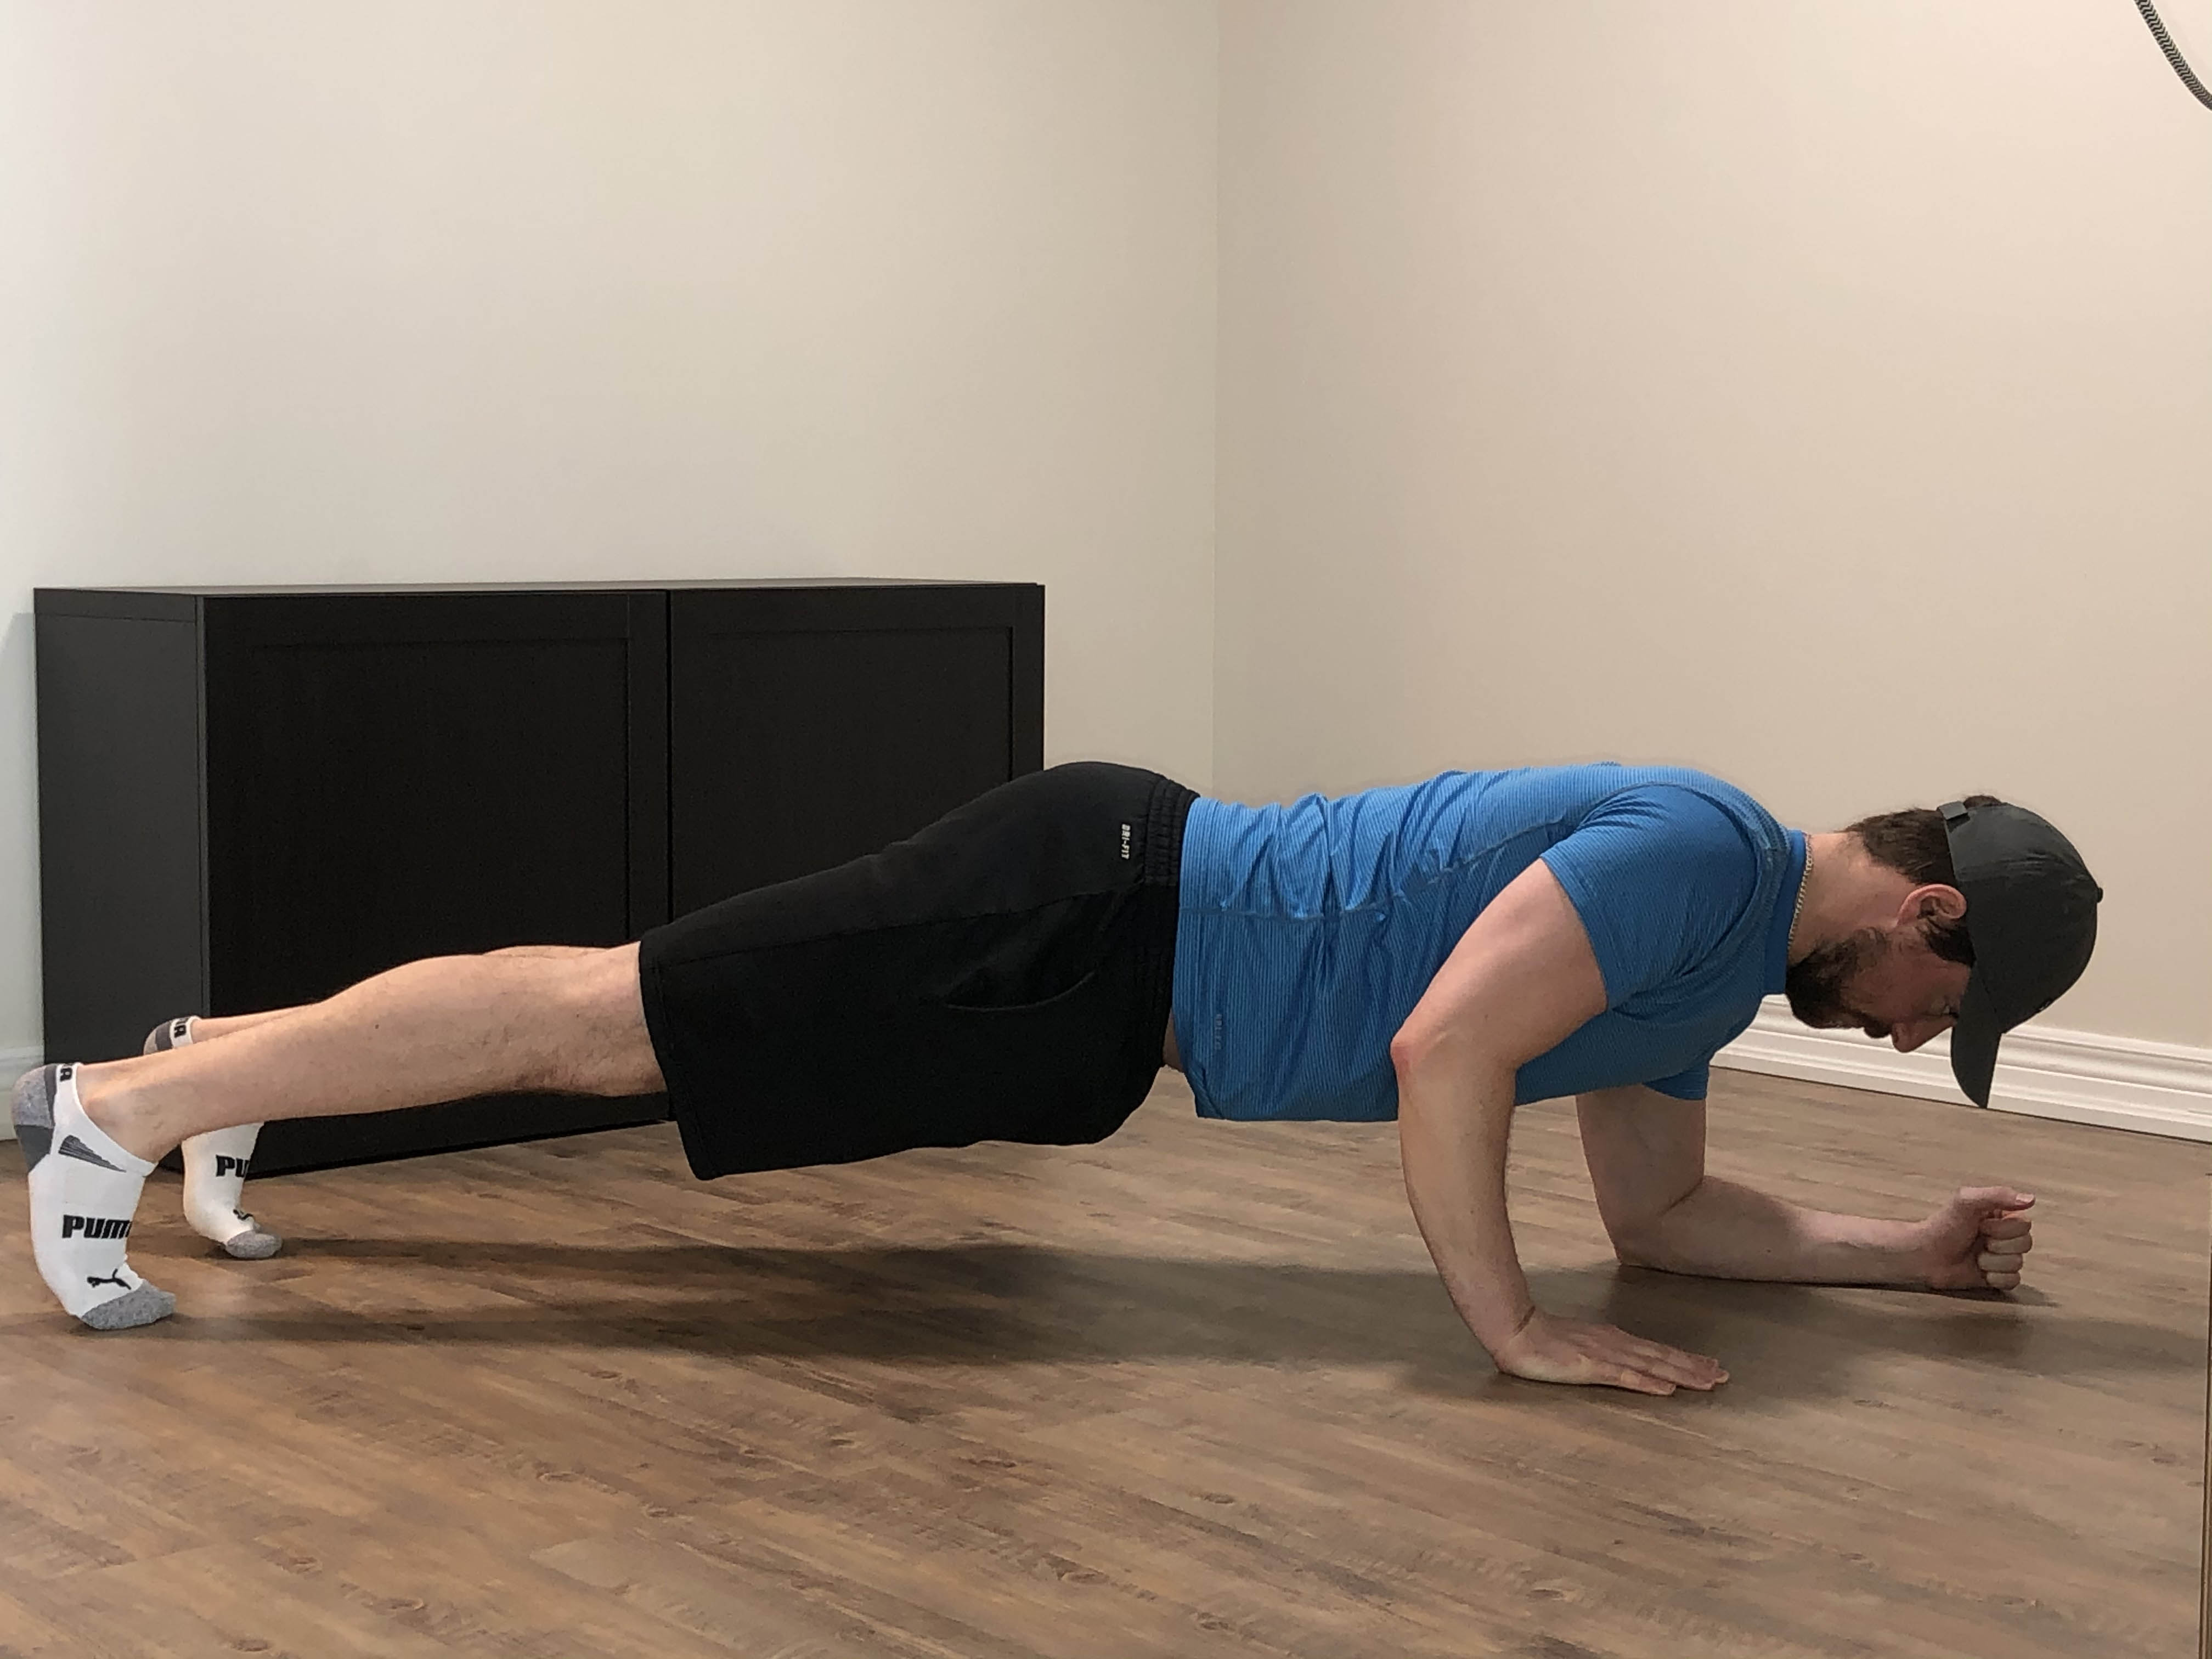 april-28-brandon-plank-push-up-M